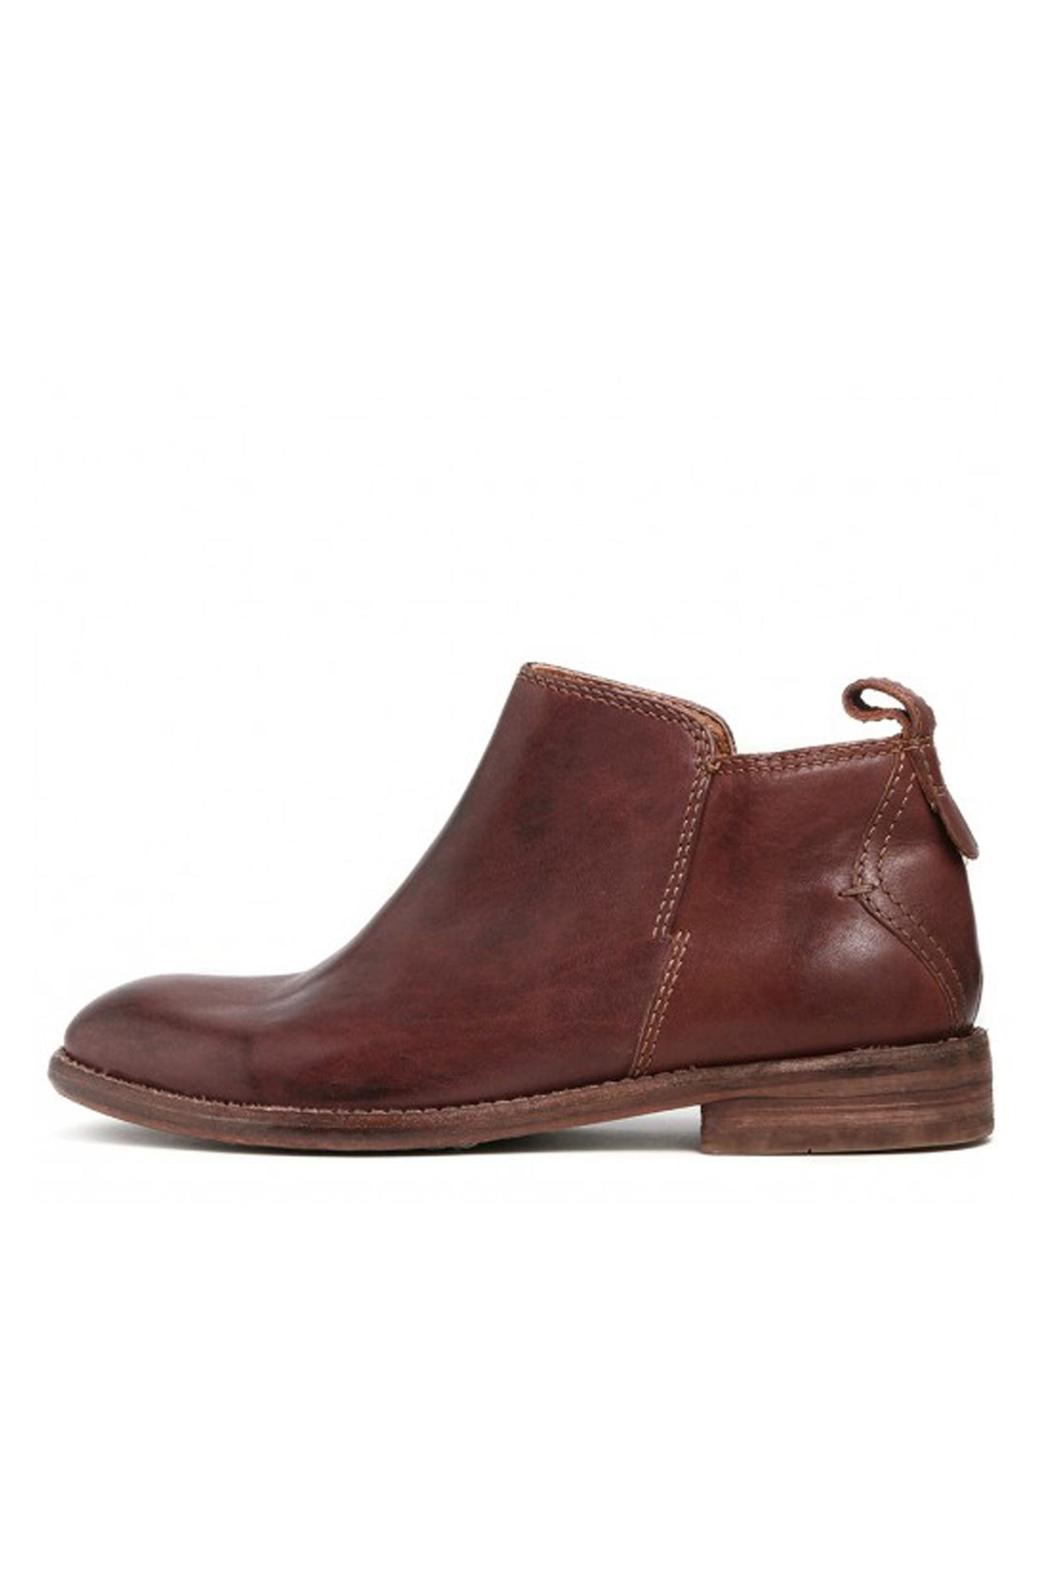 H by Hudson Revelin Booties from